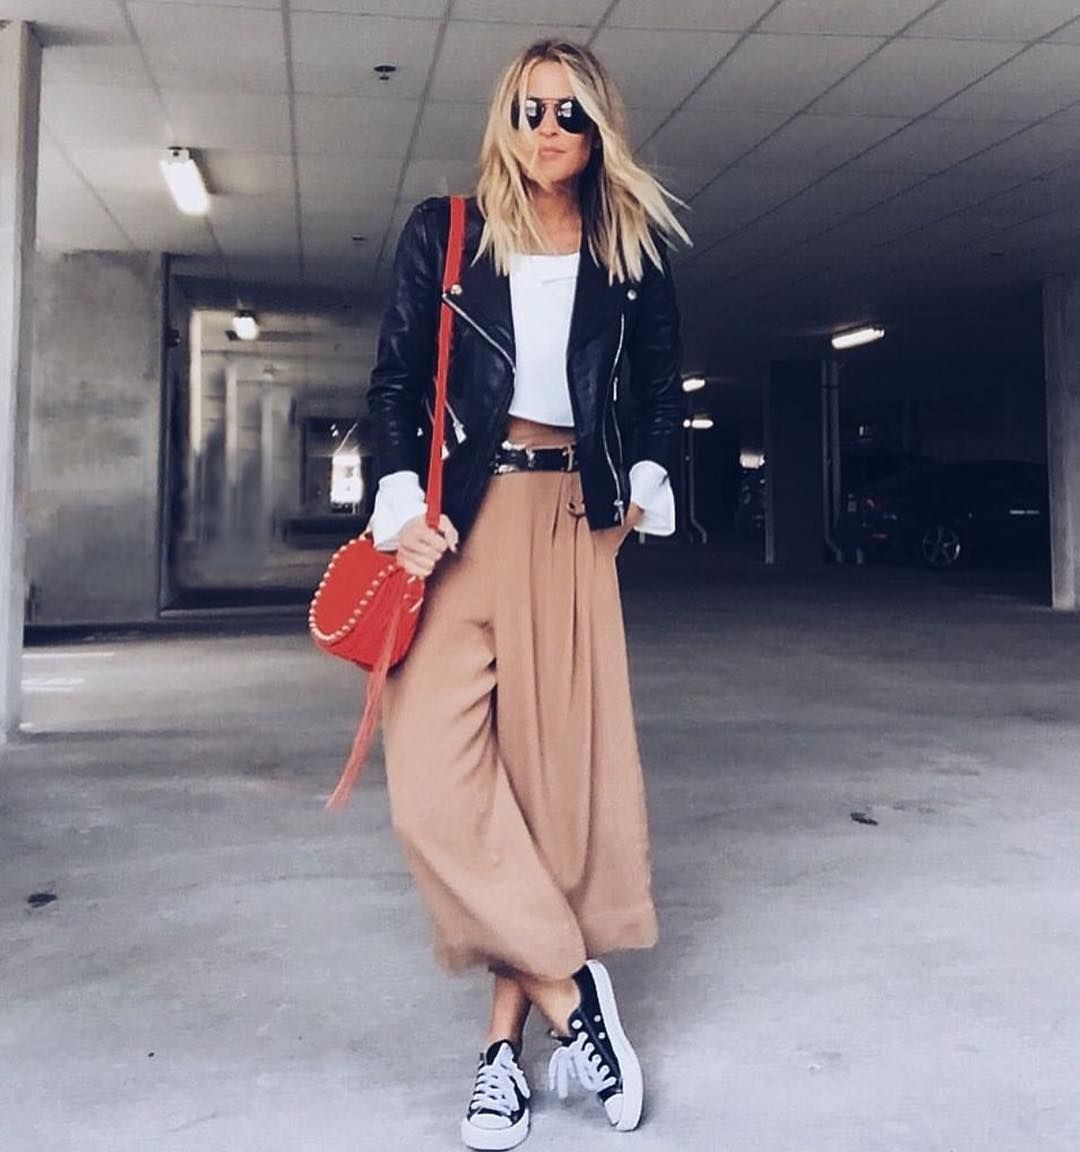 OOTD is @lindsaymarcella #howtochic #ootd #outfit